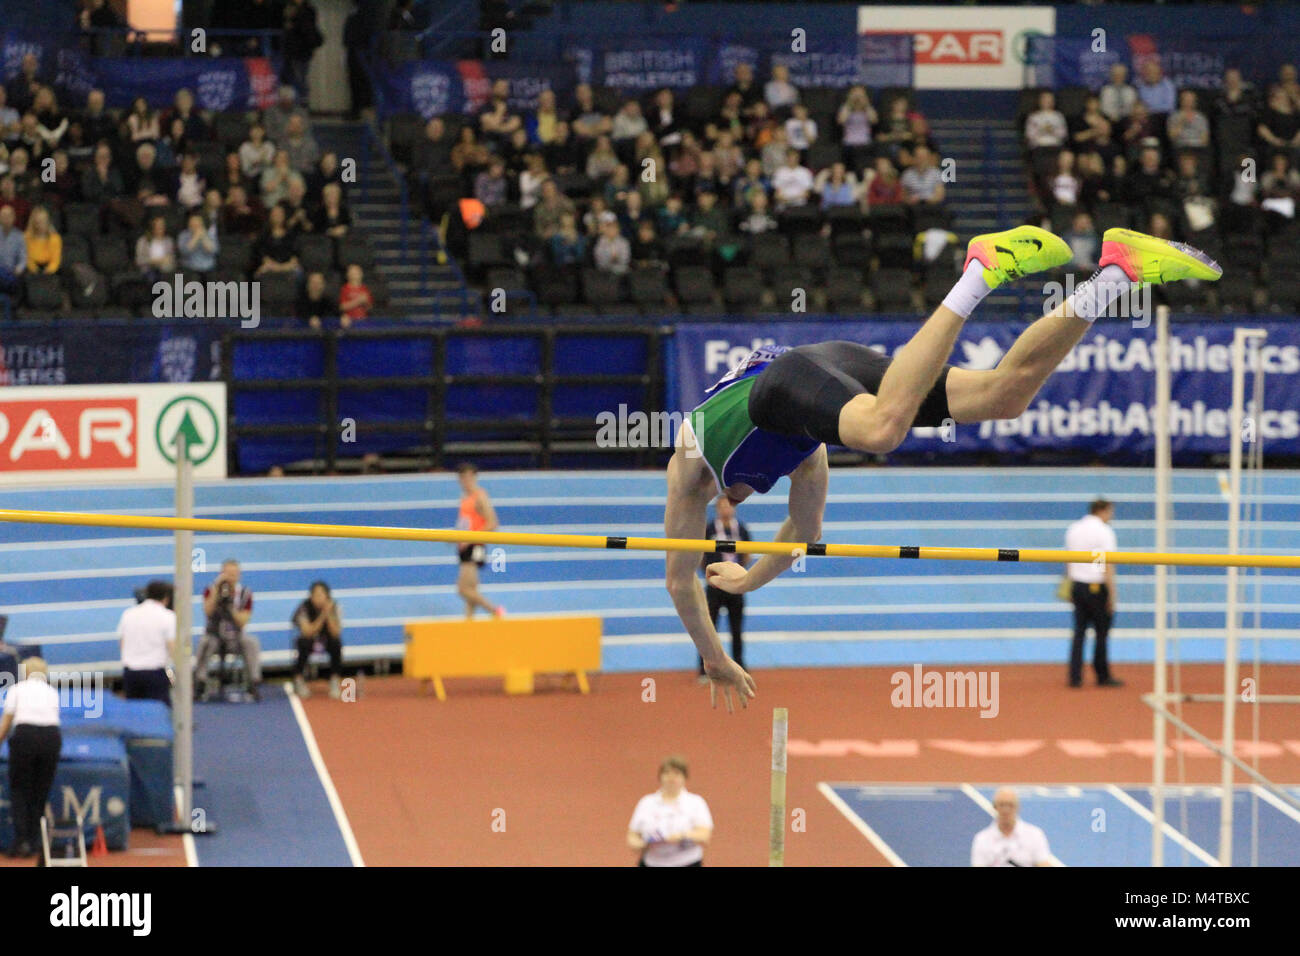 Adam Hague hits the pole during the Pole Vault at the Arena Birmingham as he competes to become British champion - Stock Image